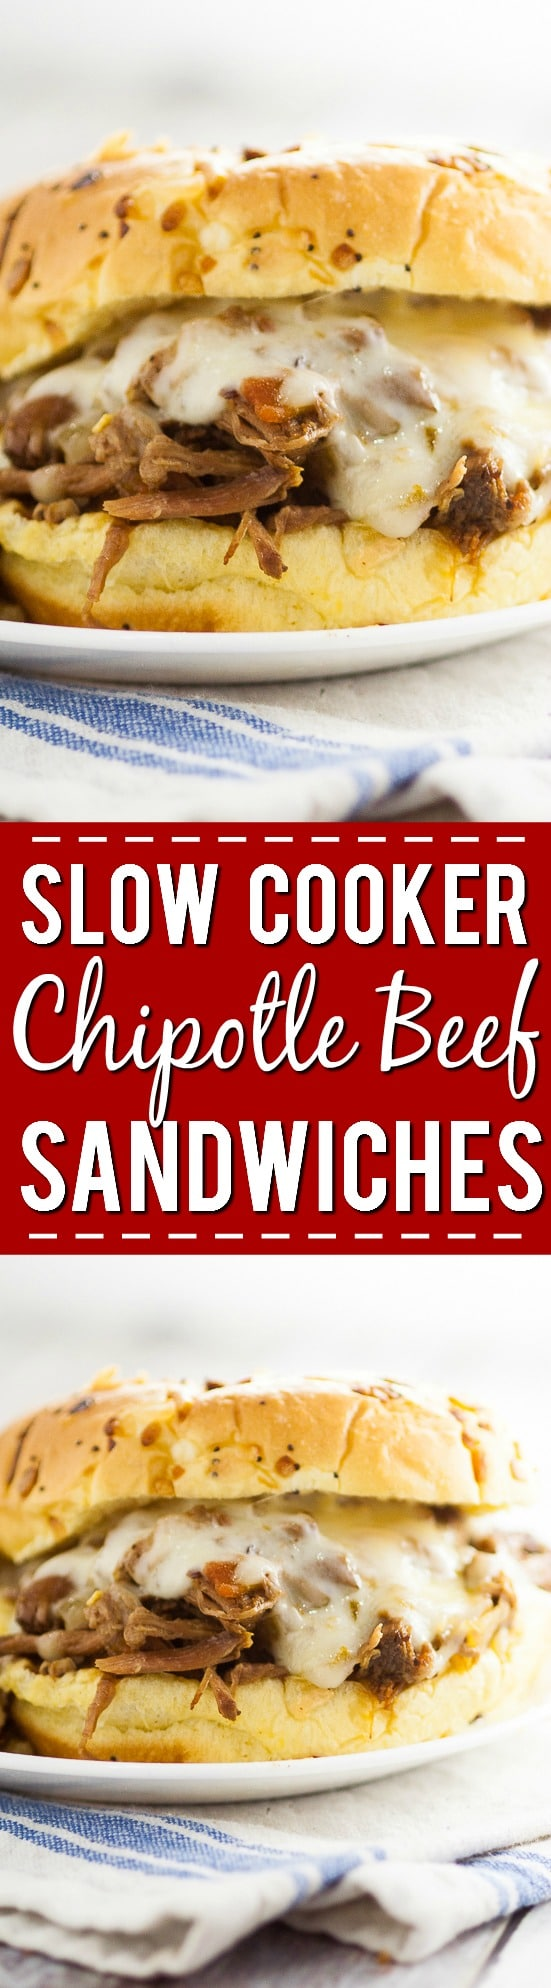 Slow Cooker Chipotle Beef Sandwiches Recipe -This Slow Cooker Chipotle Beef Sandwiches recipe is a zesty new take on classic pulled beef that's super easy to make right in the Crock Pot. Just serve on a bun with cheese! Easy slow cooker recipe that the family will love